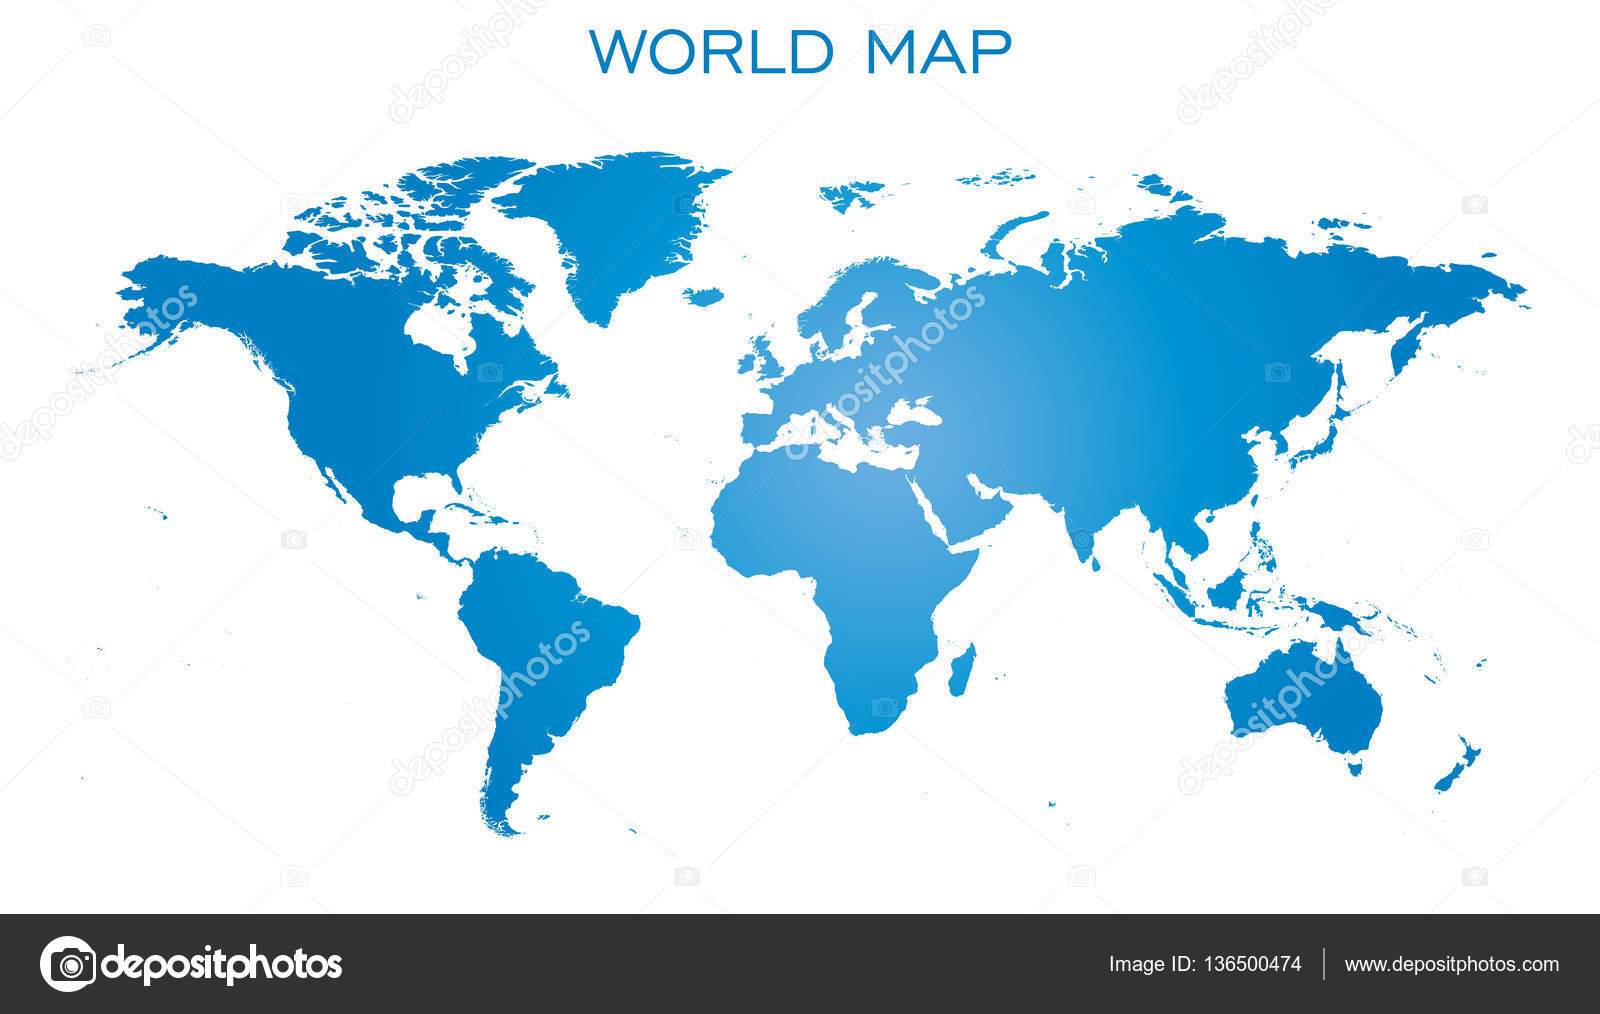 Flat World Map Vector.Blank Blue World Map Isolated On White Background World Map Vector